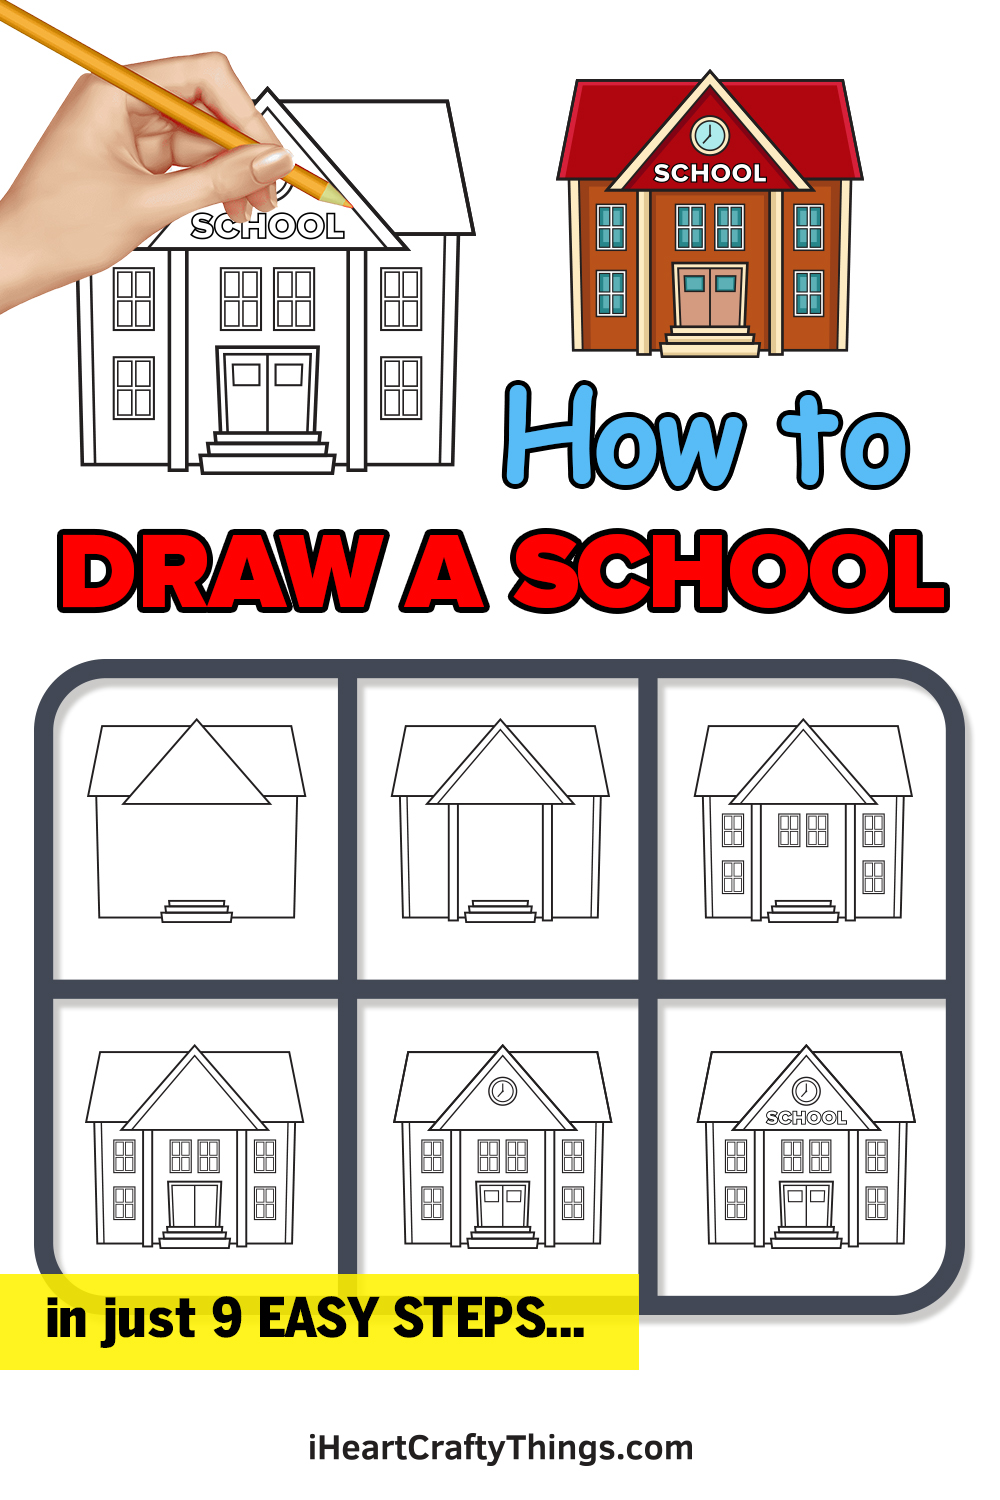 how to draw a school in 9 easy steps